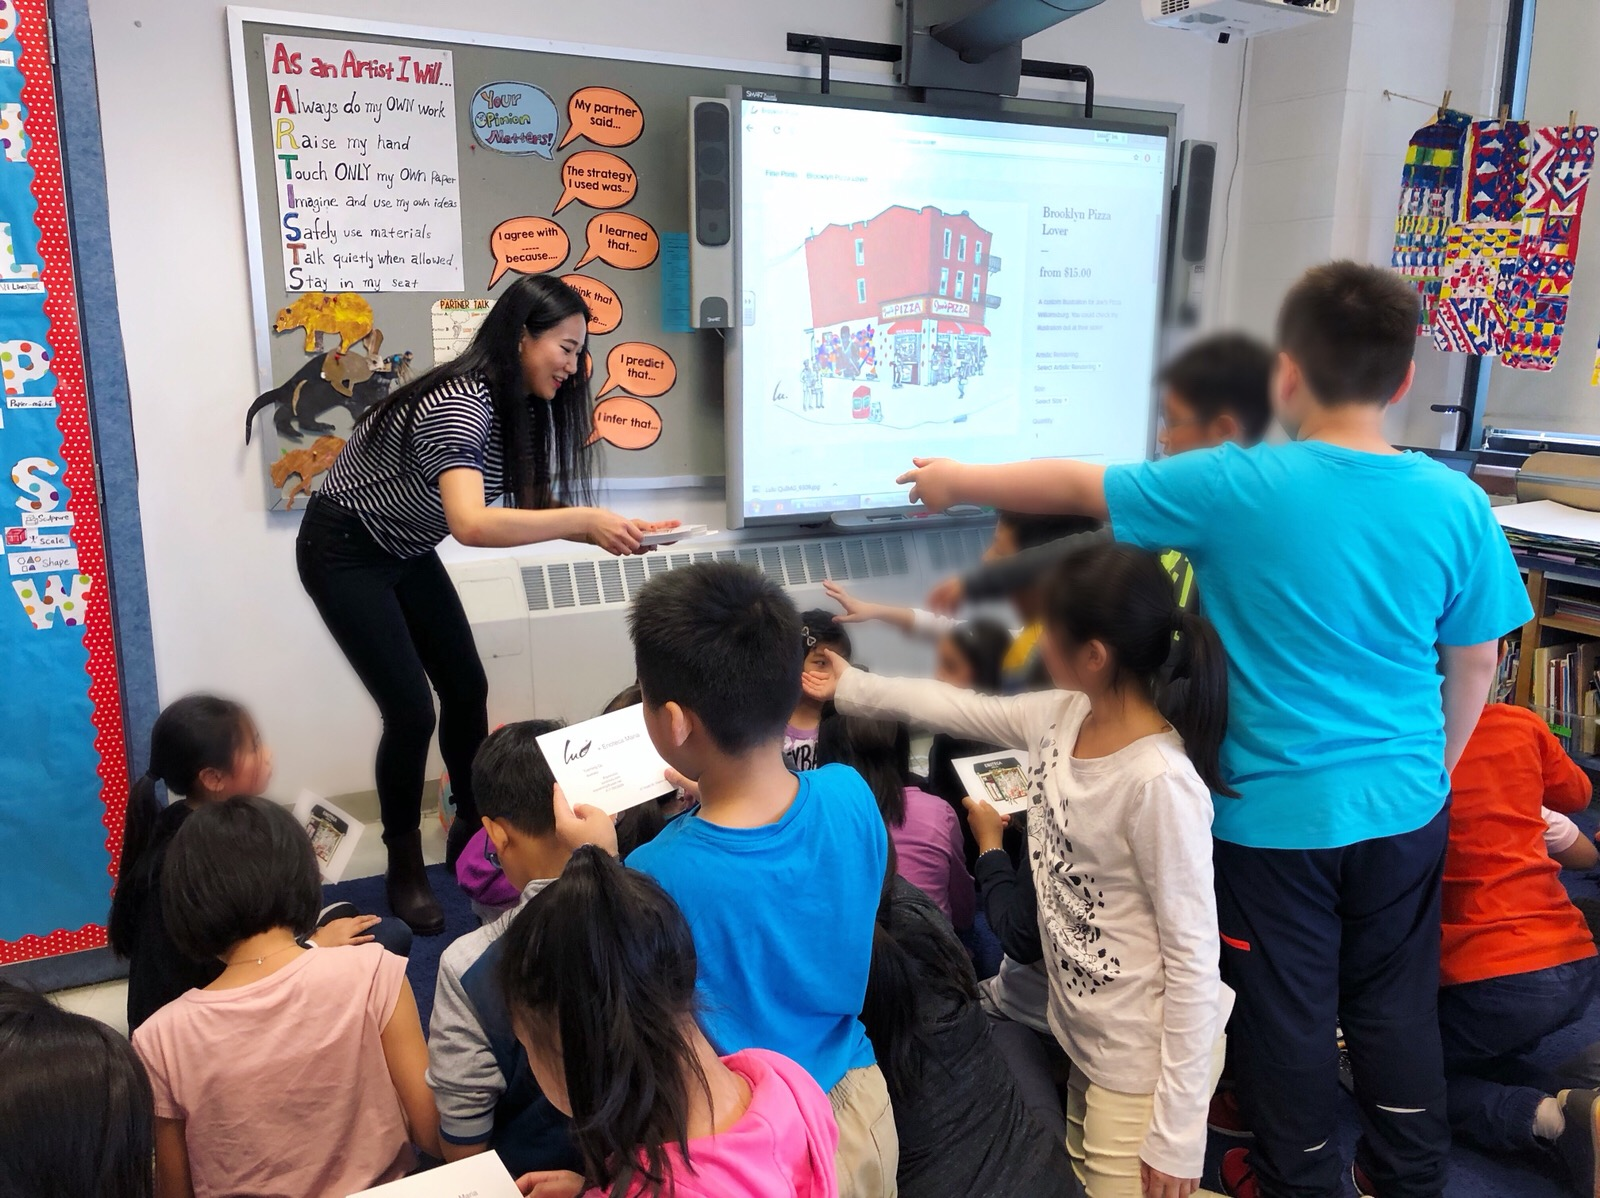 LULU x P.S. 69 Vincent D Grippo School  Lulu visited P.S. 69 Vincent D Grippo School and gave the students talks about her art at May 10th and June 1st 2018.